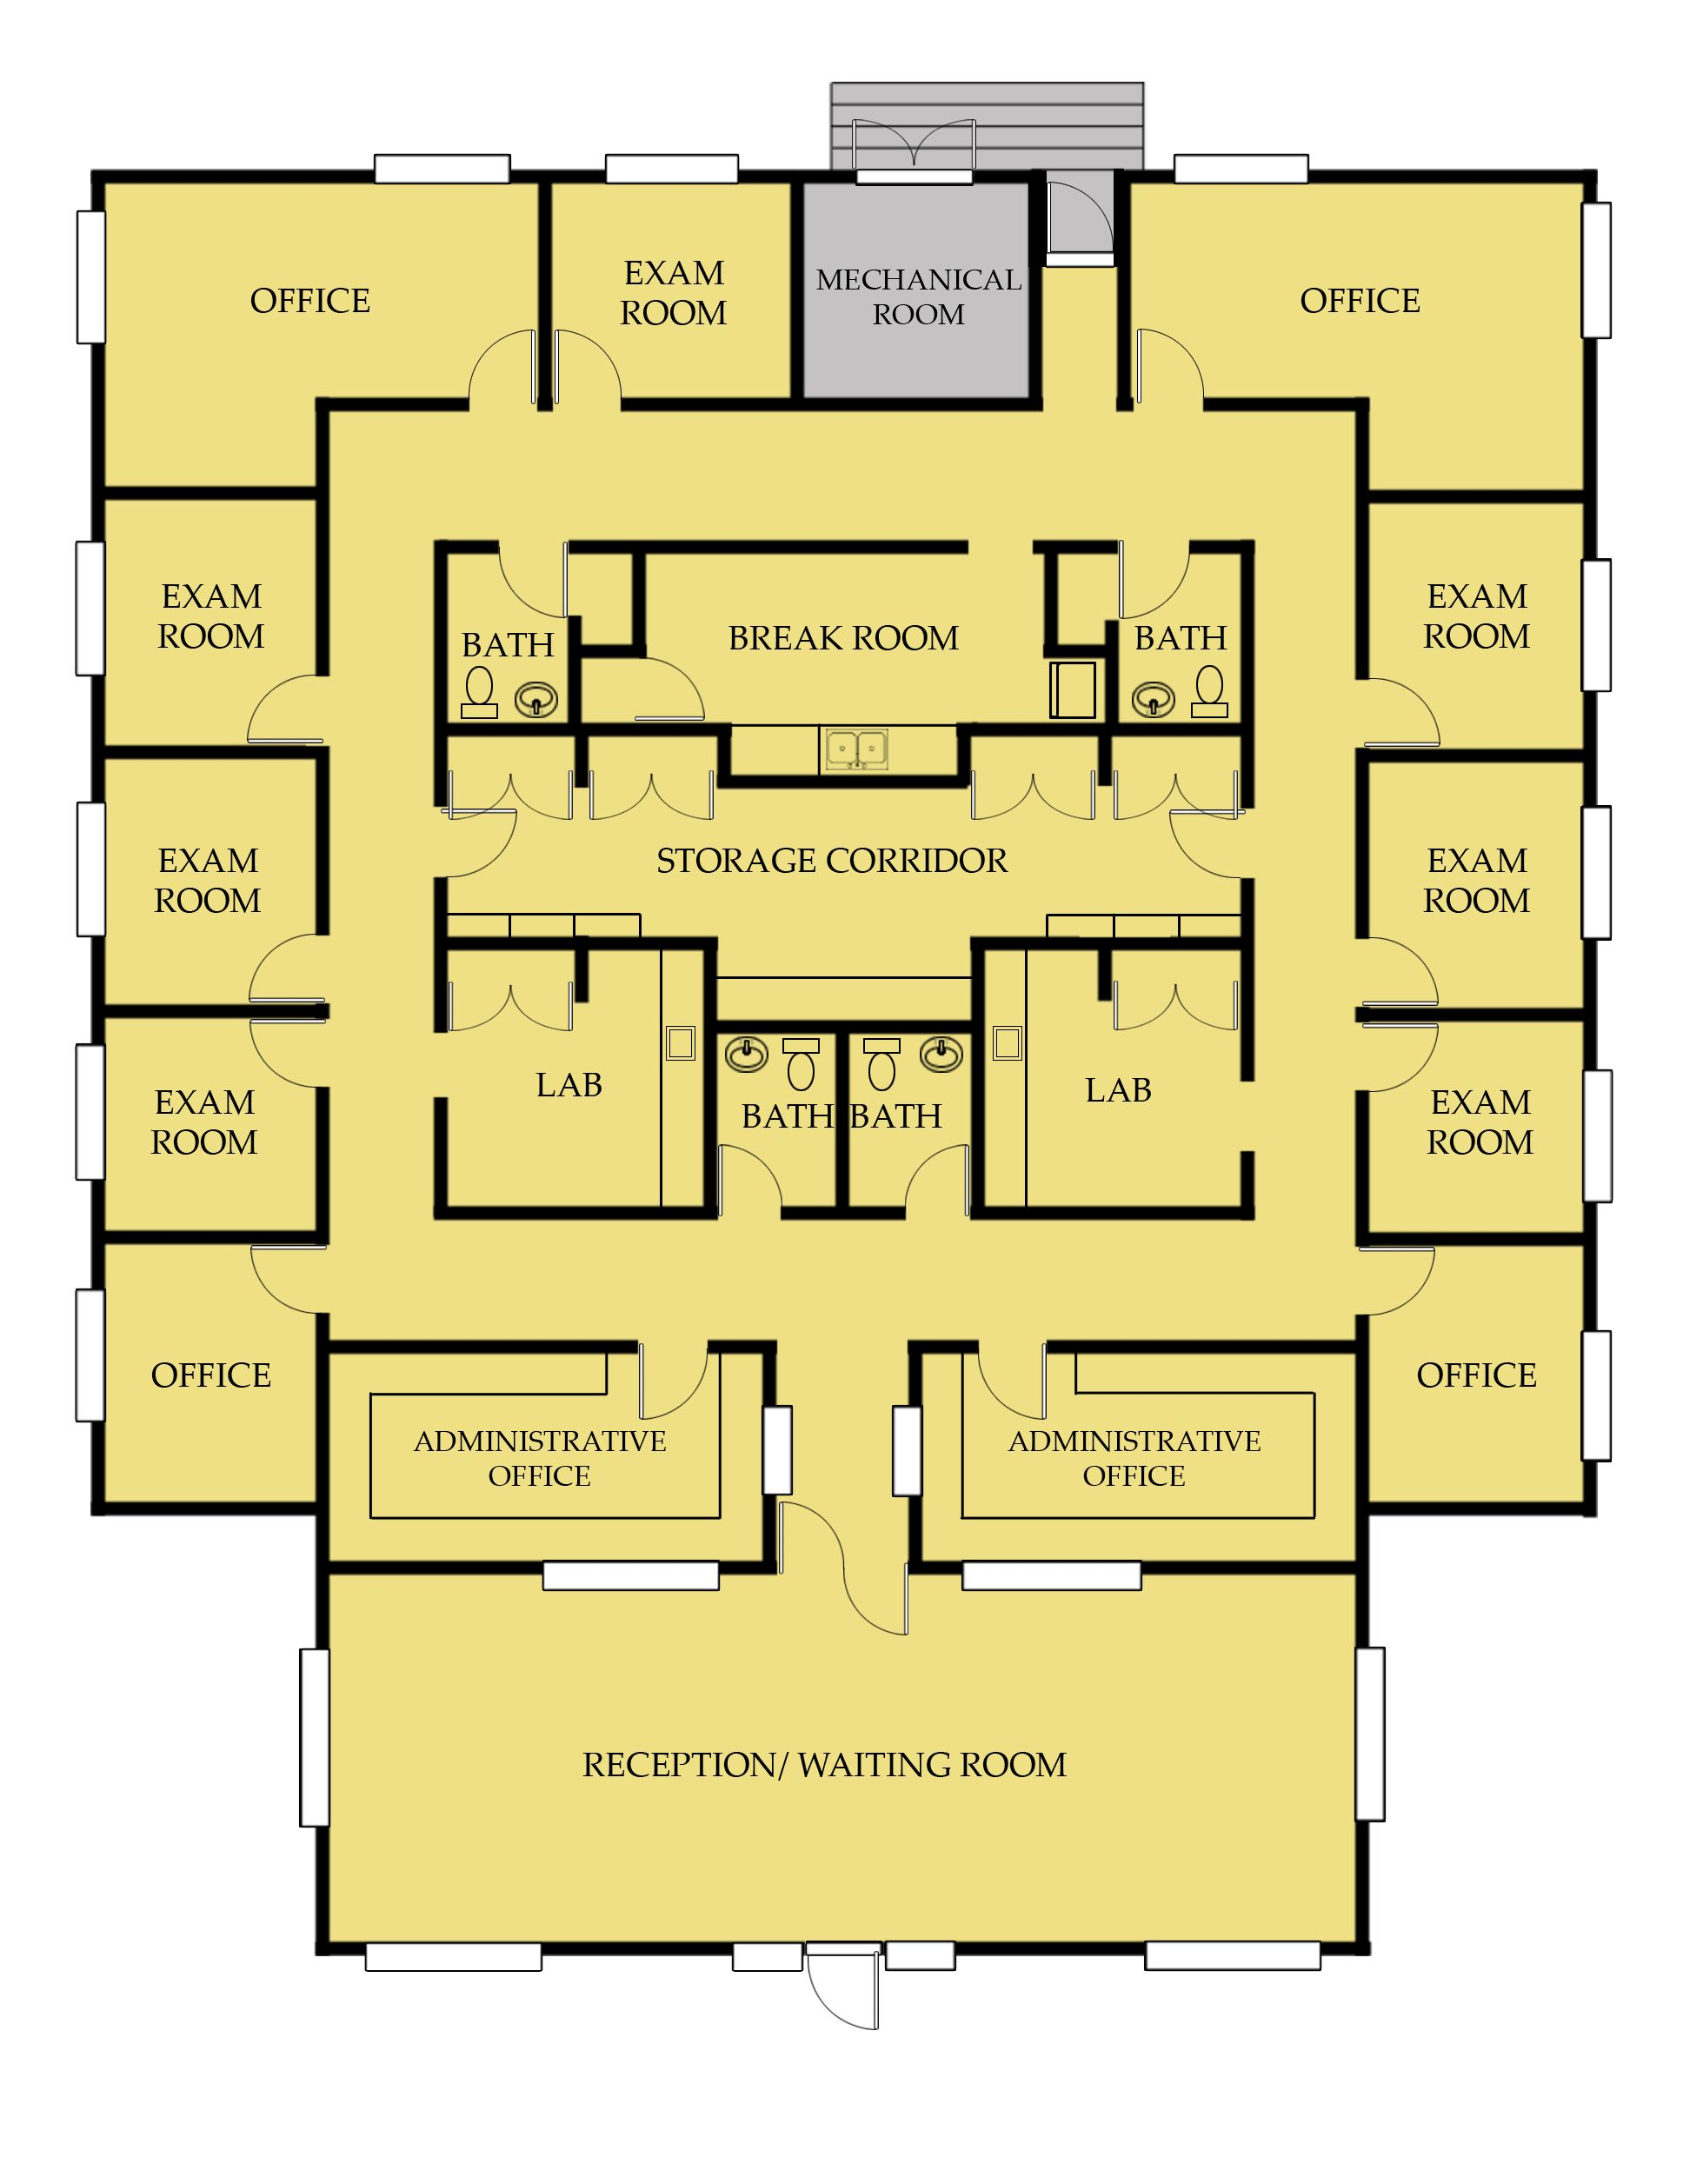 Medical office building floor plans medical pinterest for Office building plans and designs